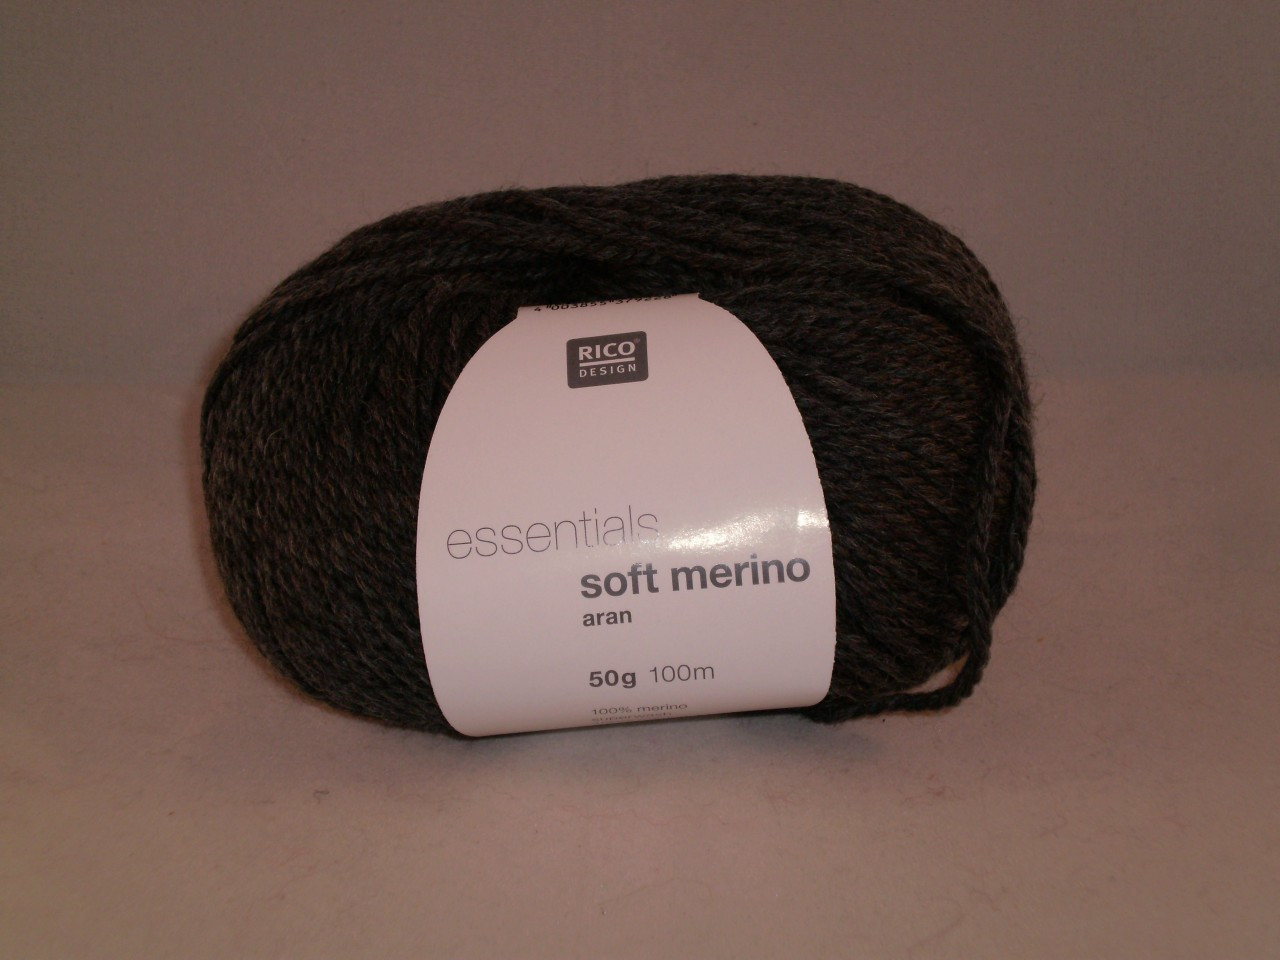 Rico Essentials Soft Merino Aran in Grey